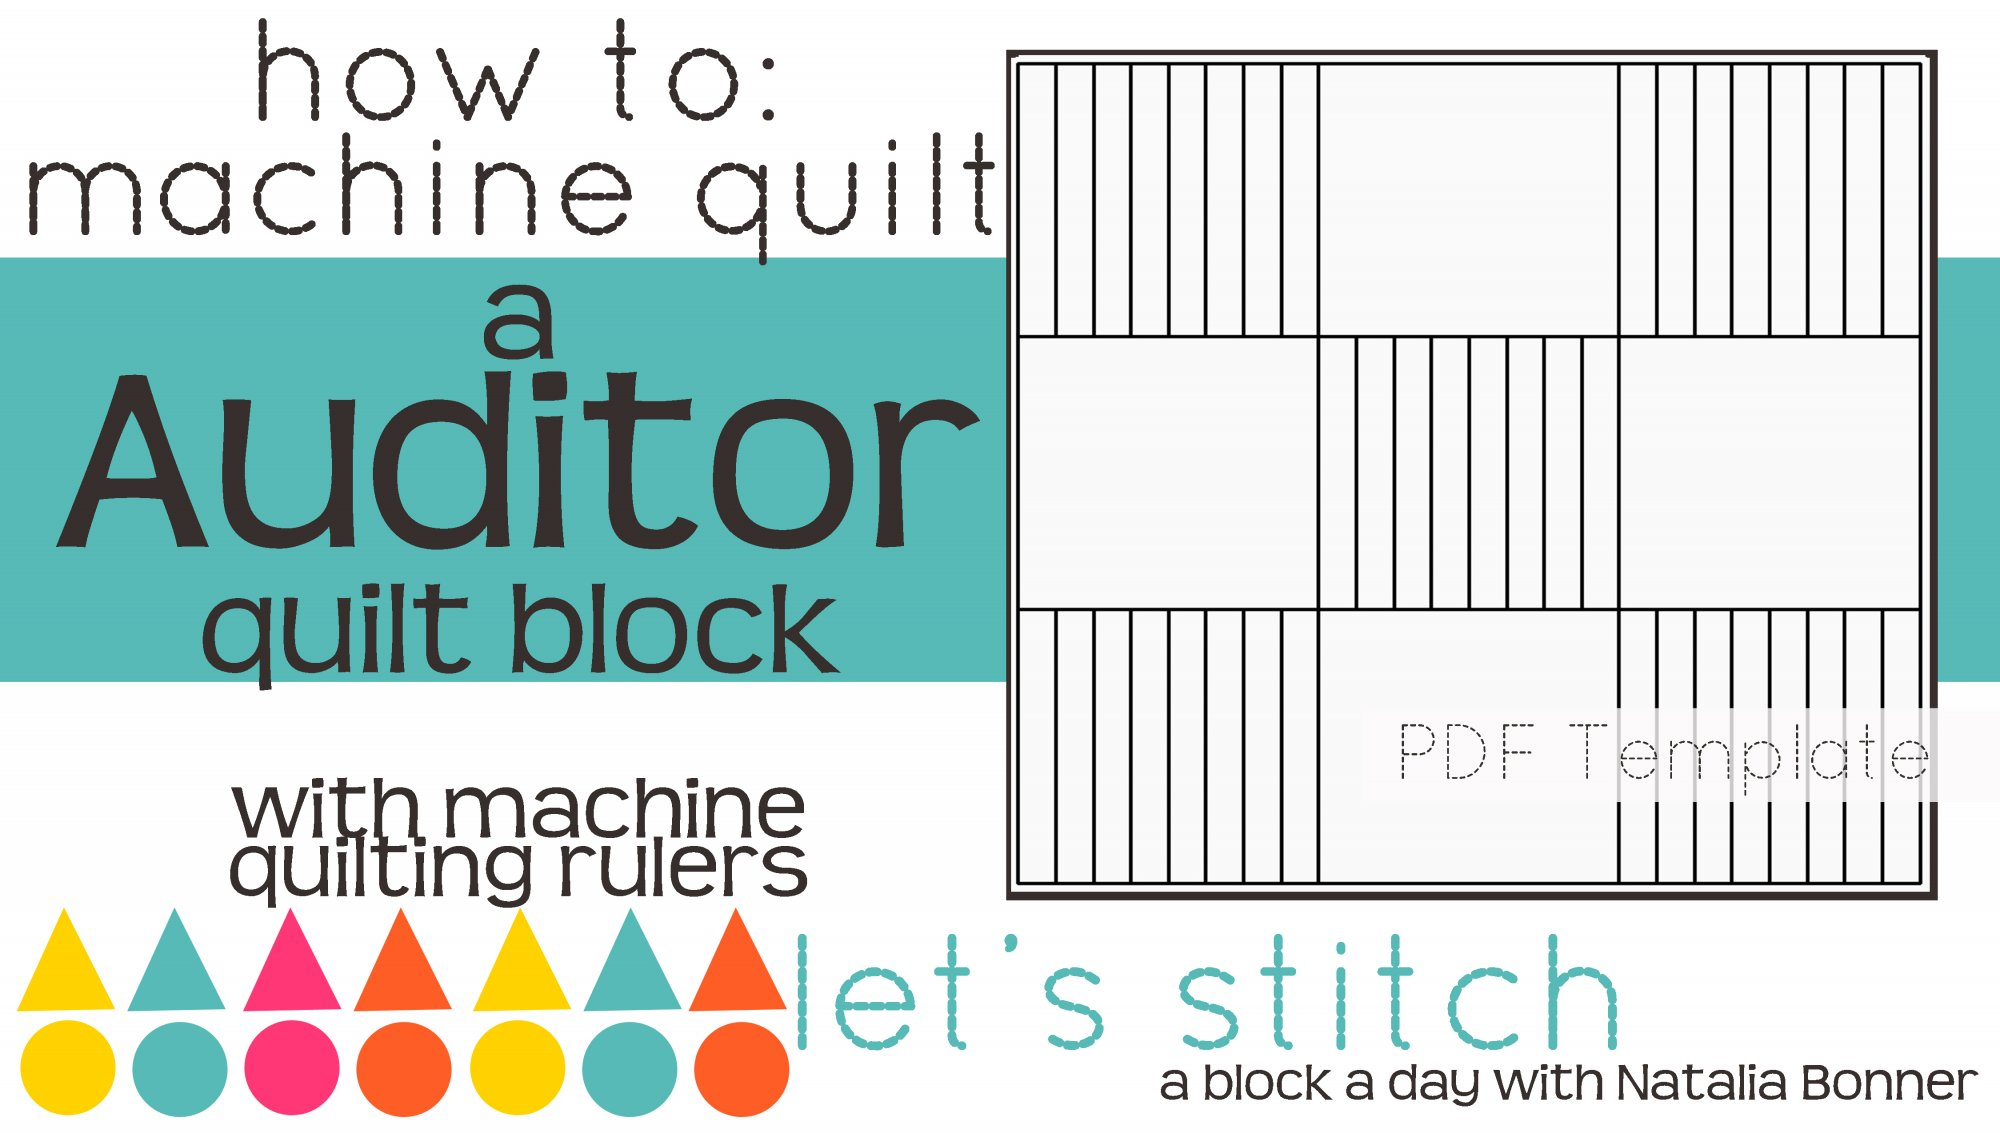 Let's Stitch - A Block a Day With Natalia Bonner - PDF - Auditor